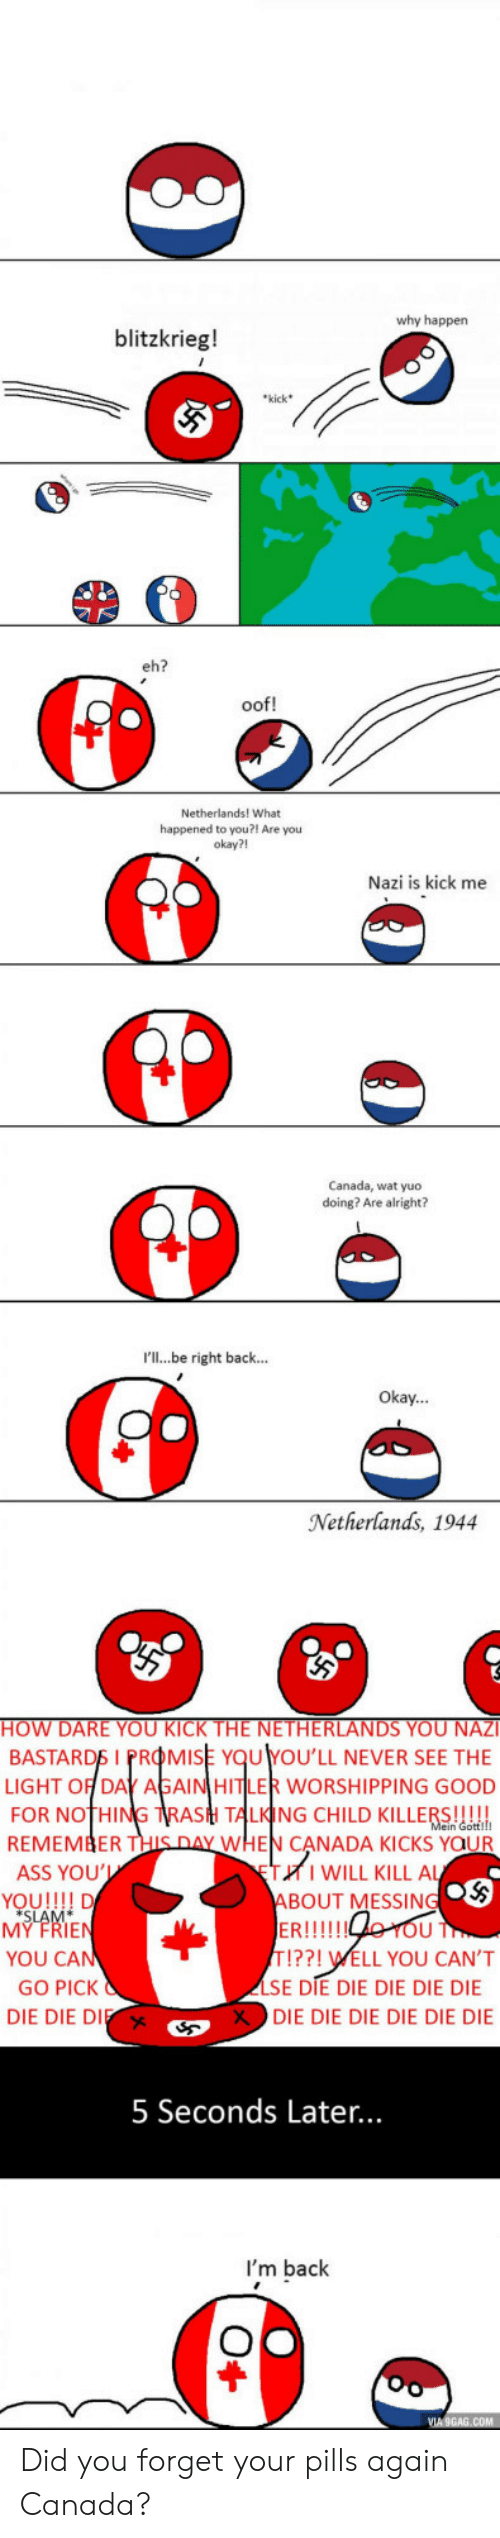 Ass, Wat, and Canada: why happen  blitzkrieg!  kick  eh?  oof!  Netherlands! What  happened to you?! Are you  okay?!  Nazi is kick me  Canada, wat yuo  doing? Are alright?  I'll...be right back...  Okay...  Netherlands, 1944  BASTARD dMISE  LIGHT OFT GAIN  FOR NOTHI  REMEMBERT  ASS YOU  OU'LL NEVER SEE THE  R WORSHIPPING GOOD  TAI ING CHILD KILLERS!  WHEN CANADA KICKS YaUR  WILL KILL A  BOUT MESSINC  MY FRIE  YOU CA  GO PICK  DIE DIE DIE  T!??! WELL YOU CAN'T  SE DIE DIE DIE DIE DIE  DIE DIE DIE DIE DIE DIE  Xs  5 Seconds Later...  I'm back Did you forget your pills again Canada?